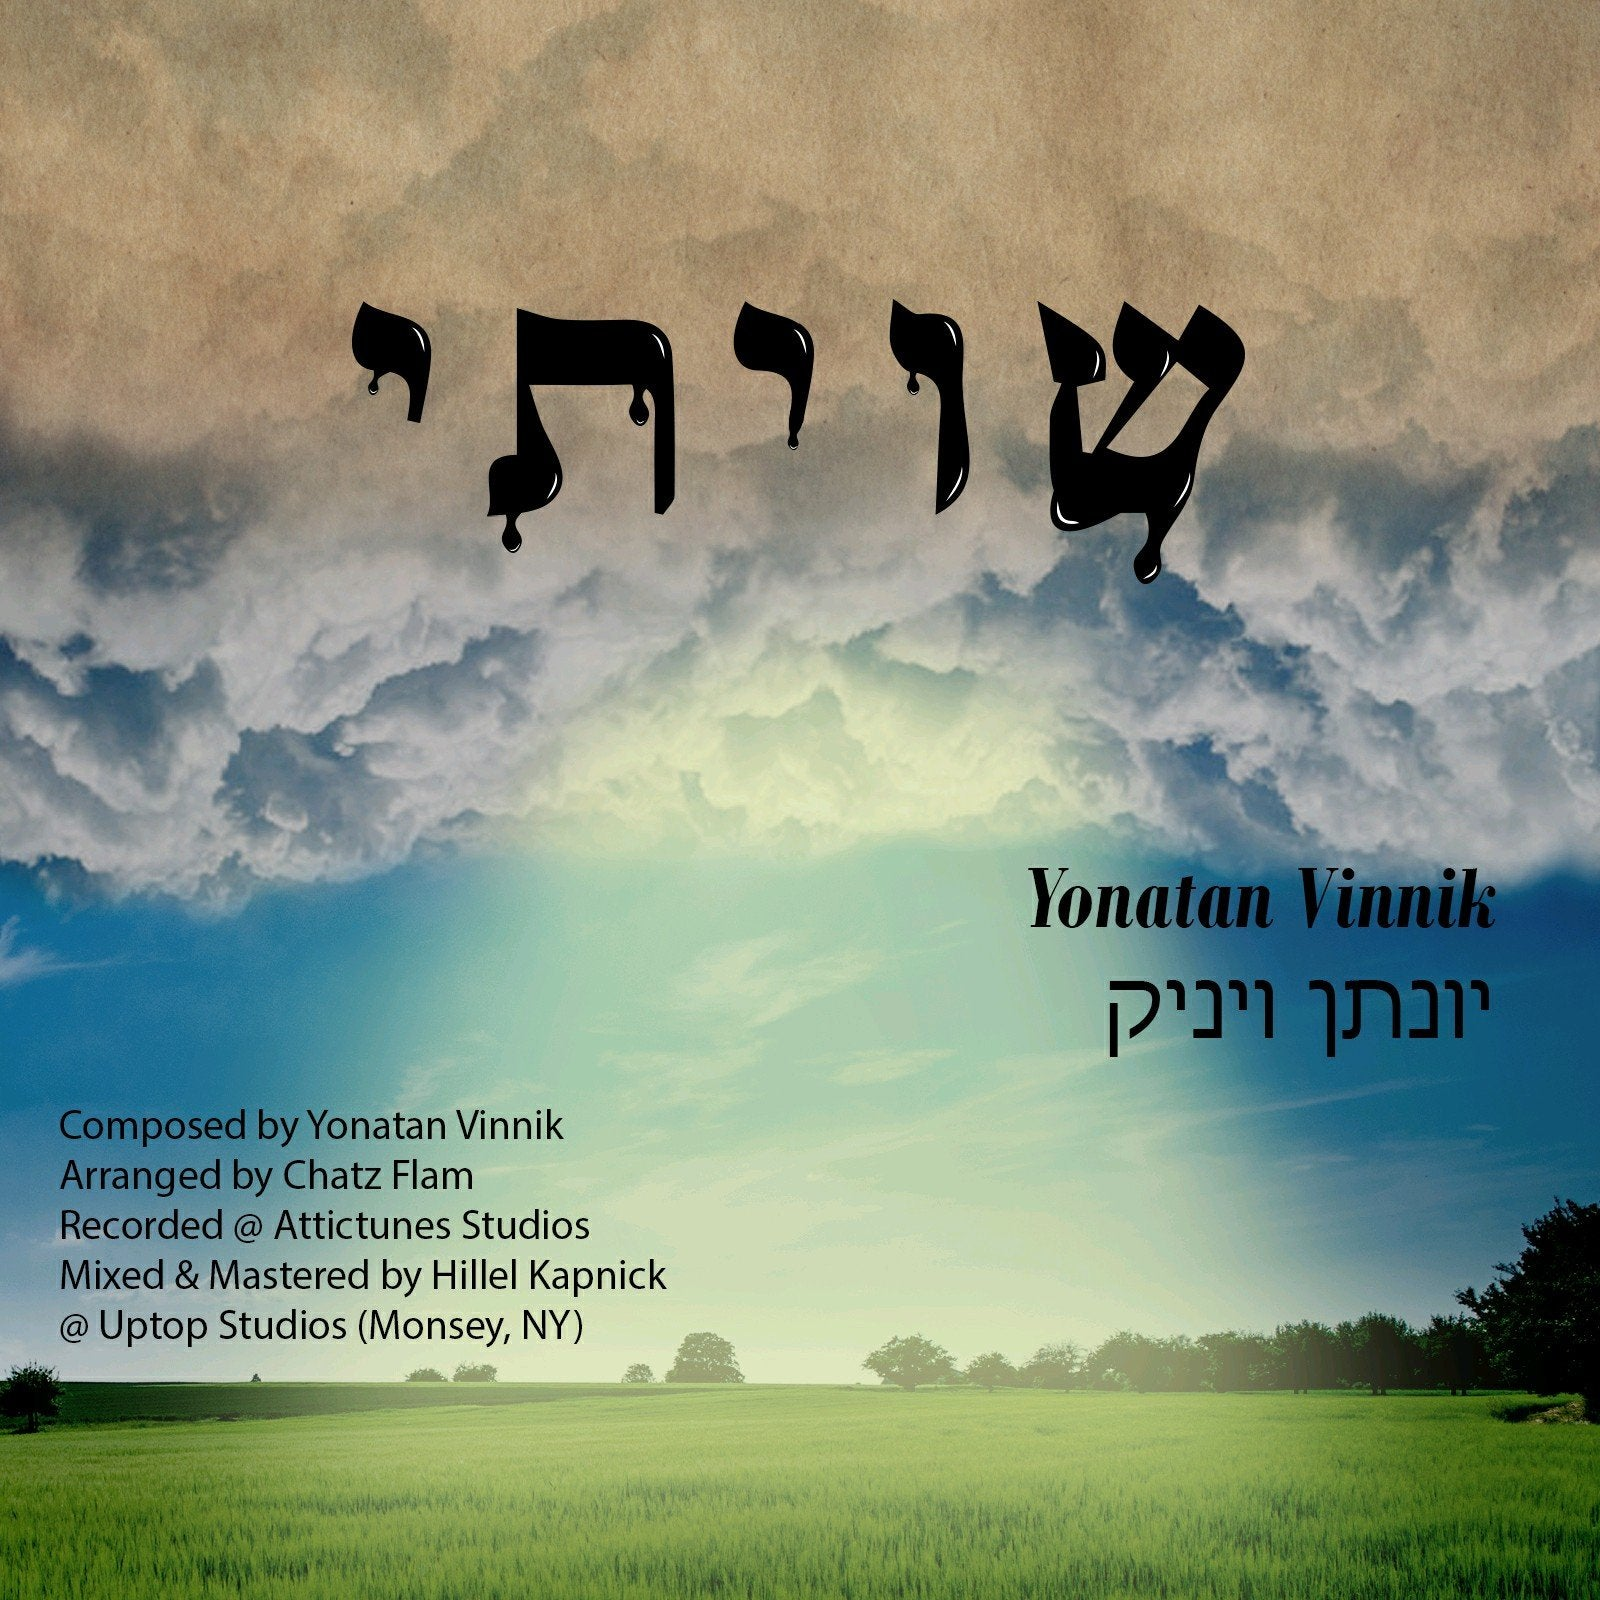 Yonatan Vinnik - Shivisi (Single)